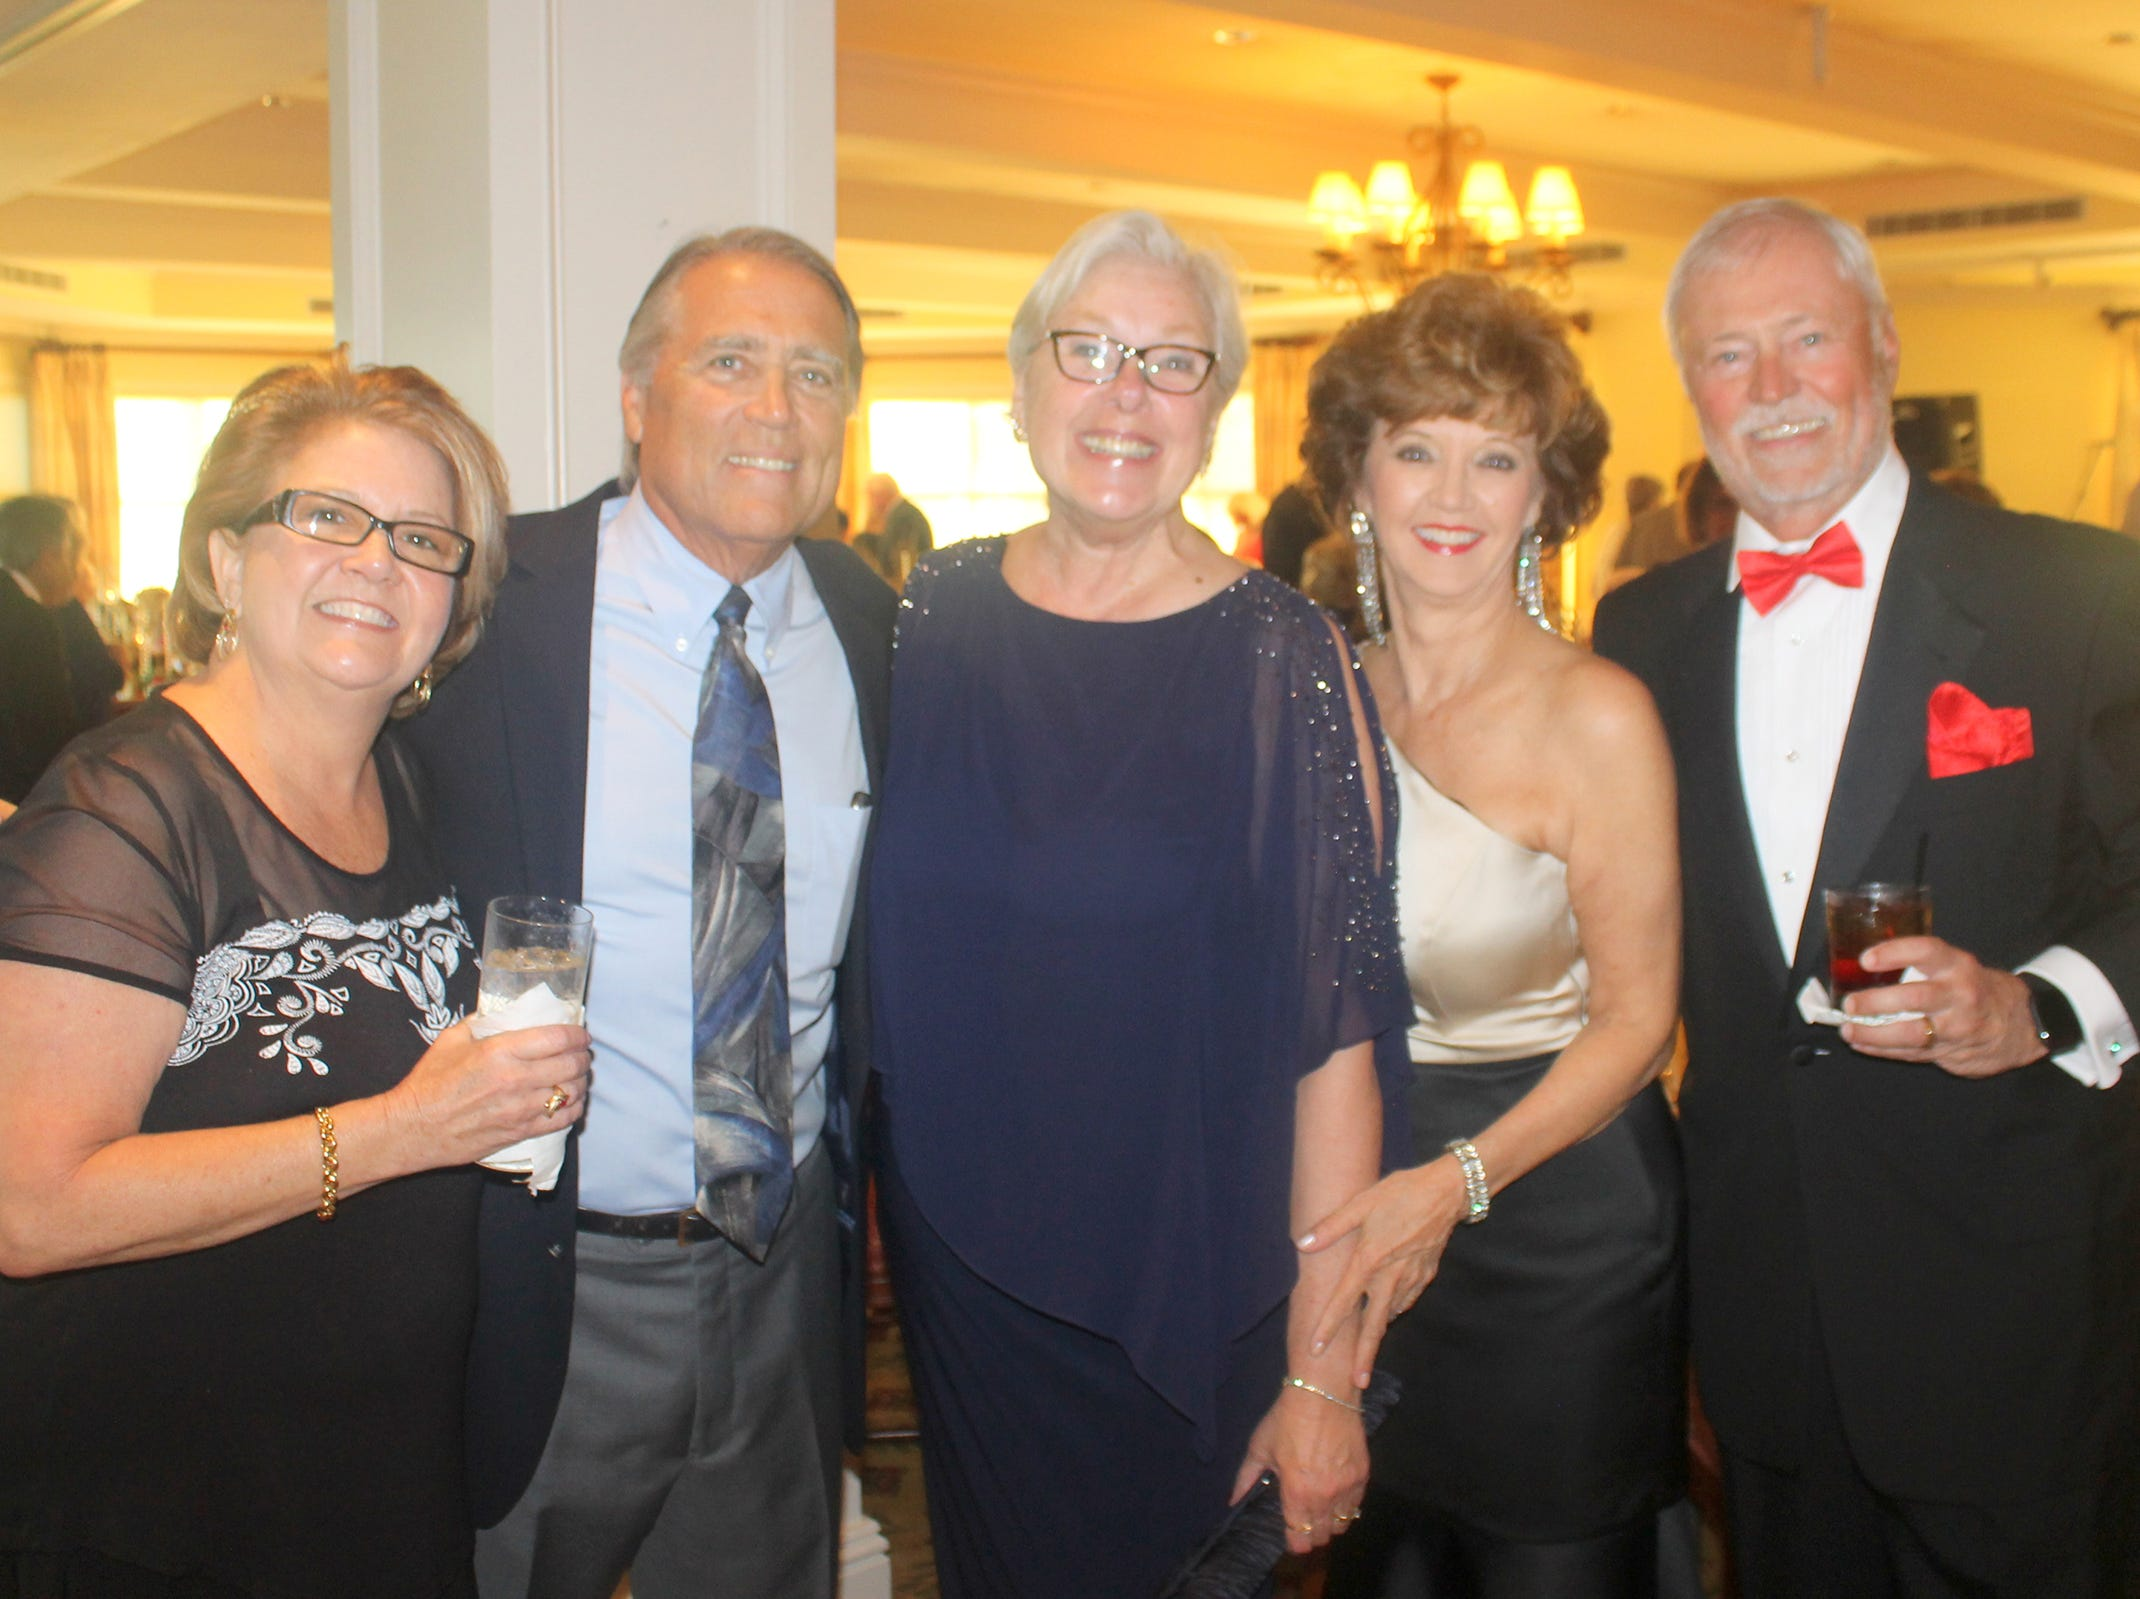 Debbie and Bill Schroeder, Jackie Dywan, Candy Seward and Bill Rogers like to party.